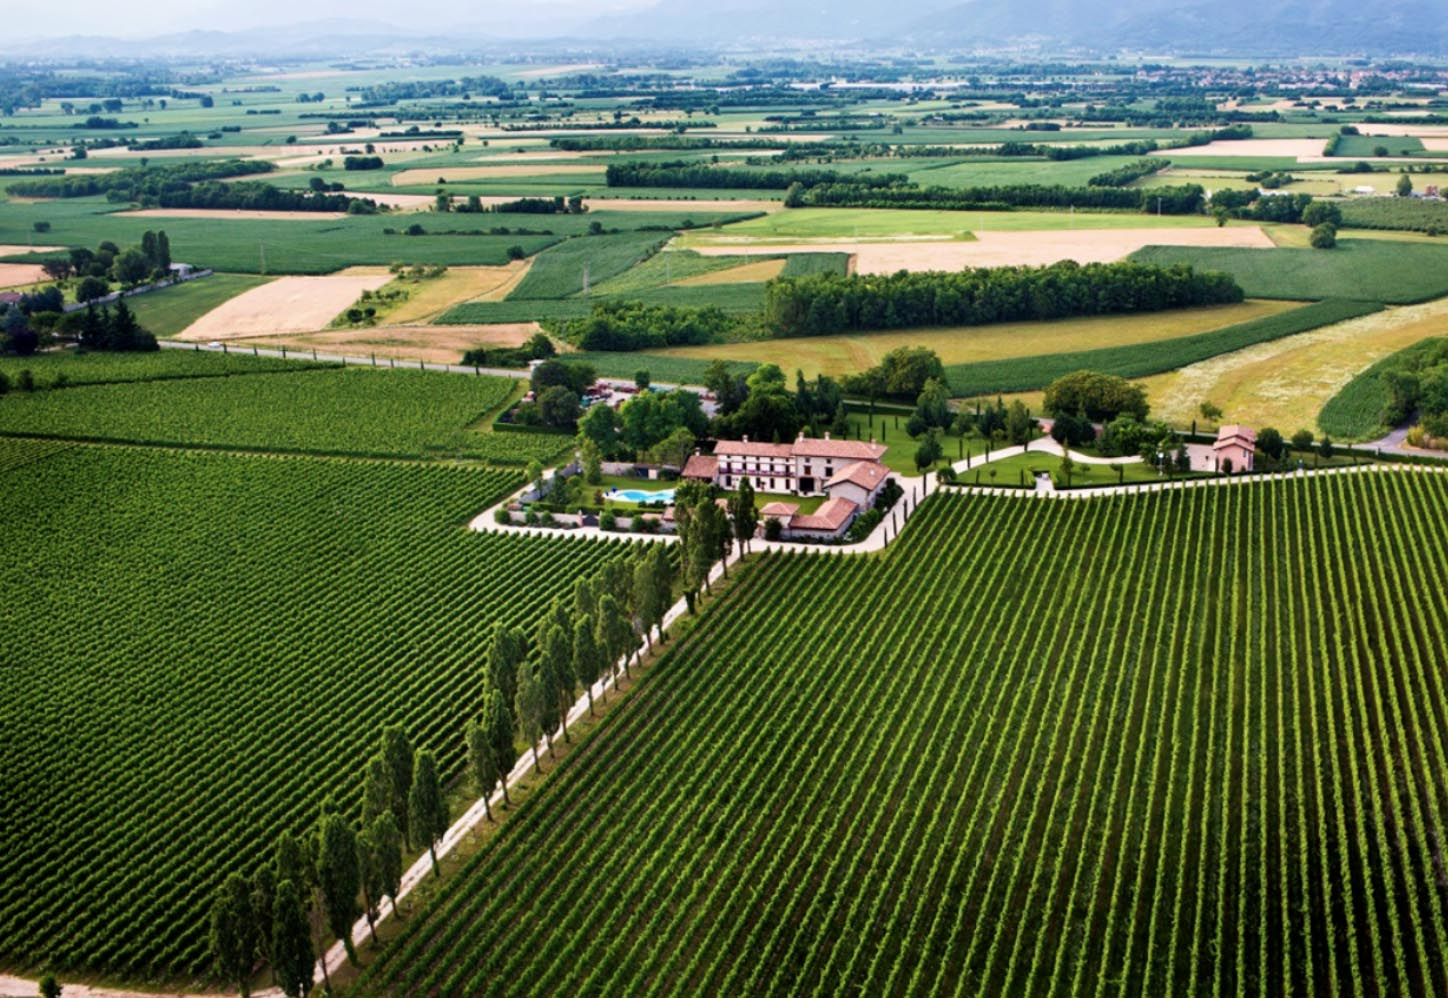 The scenic landscape of the country house and vineyards at Zorzettig